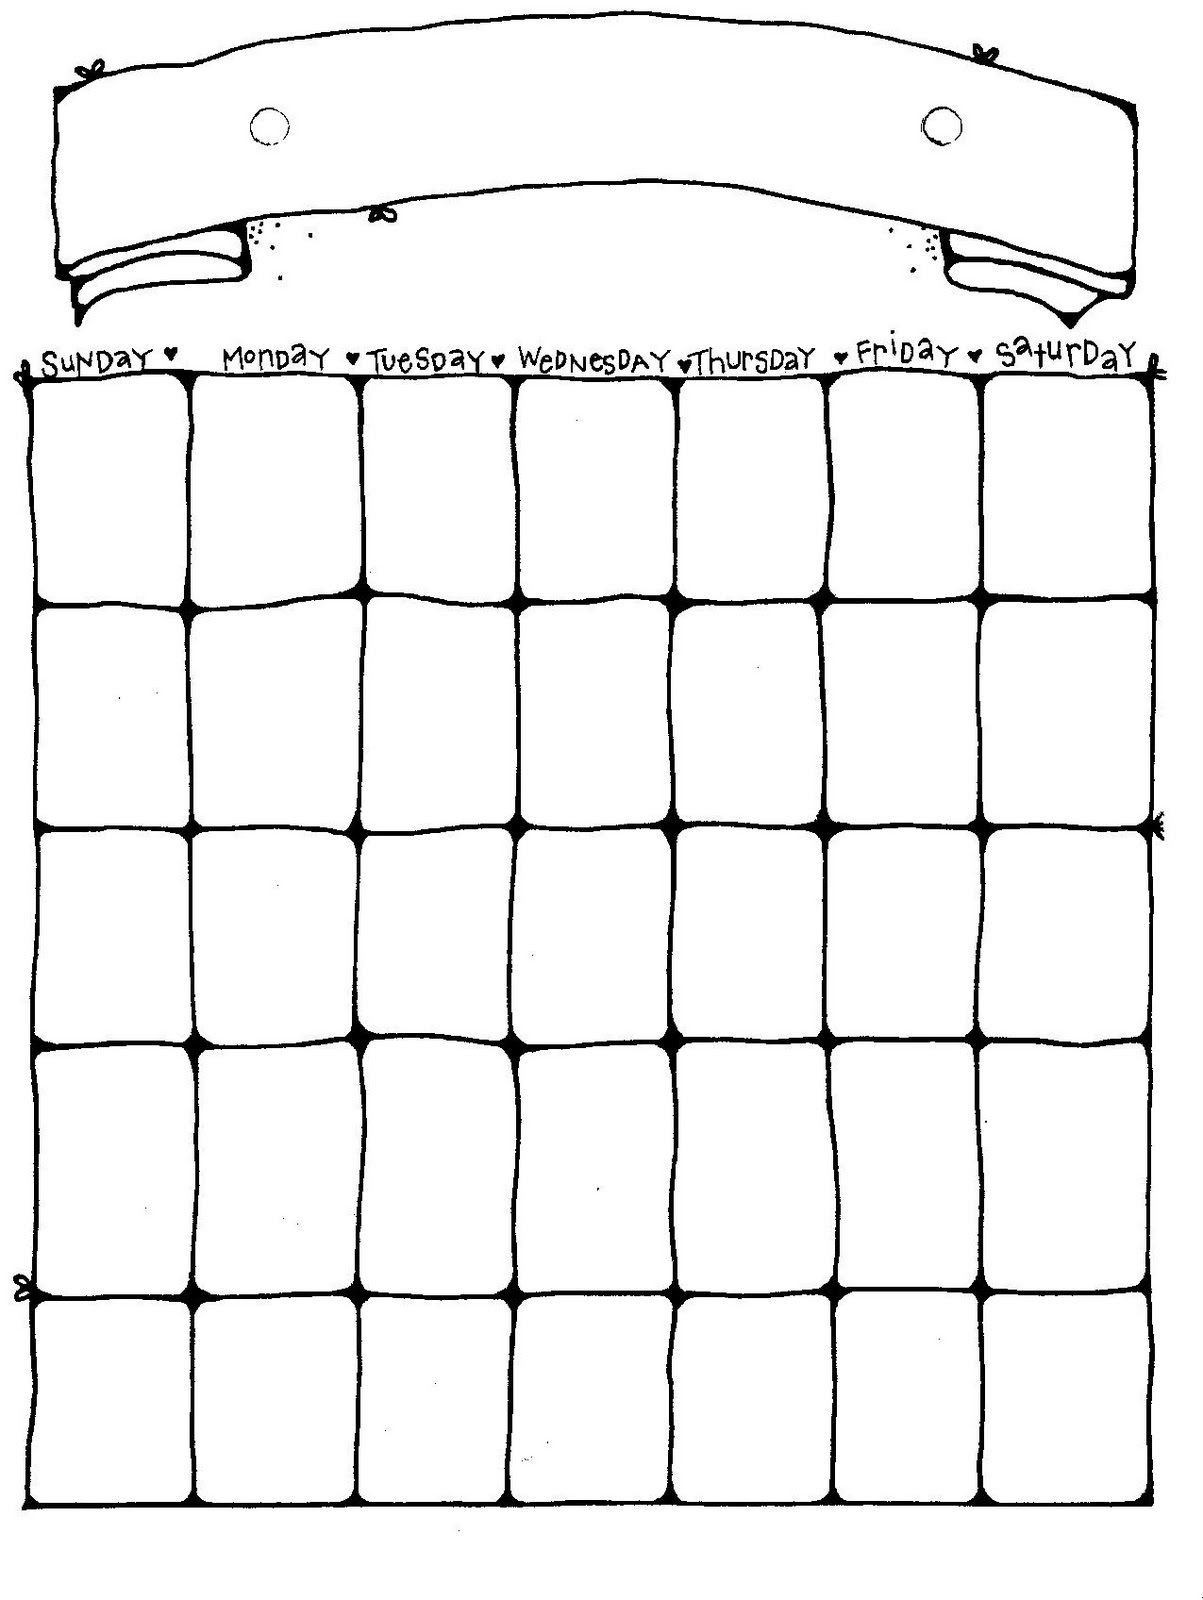 Printable Blank Calendar Pages | Activity Shelter